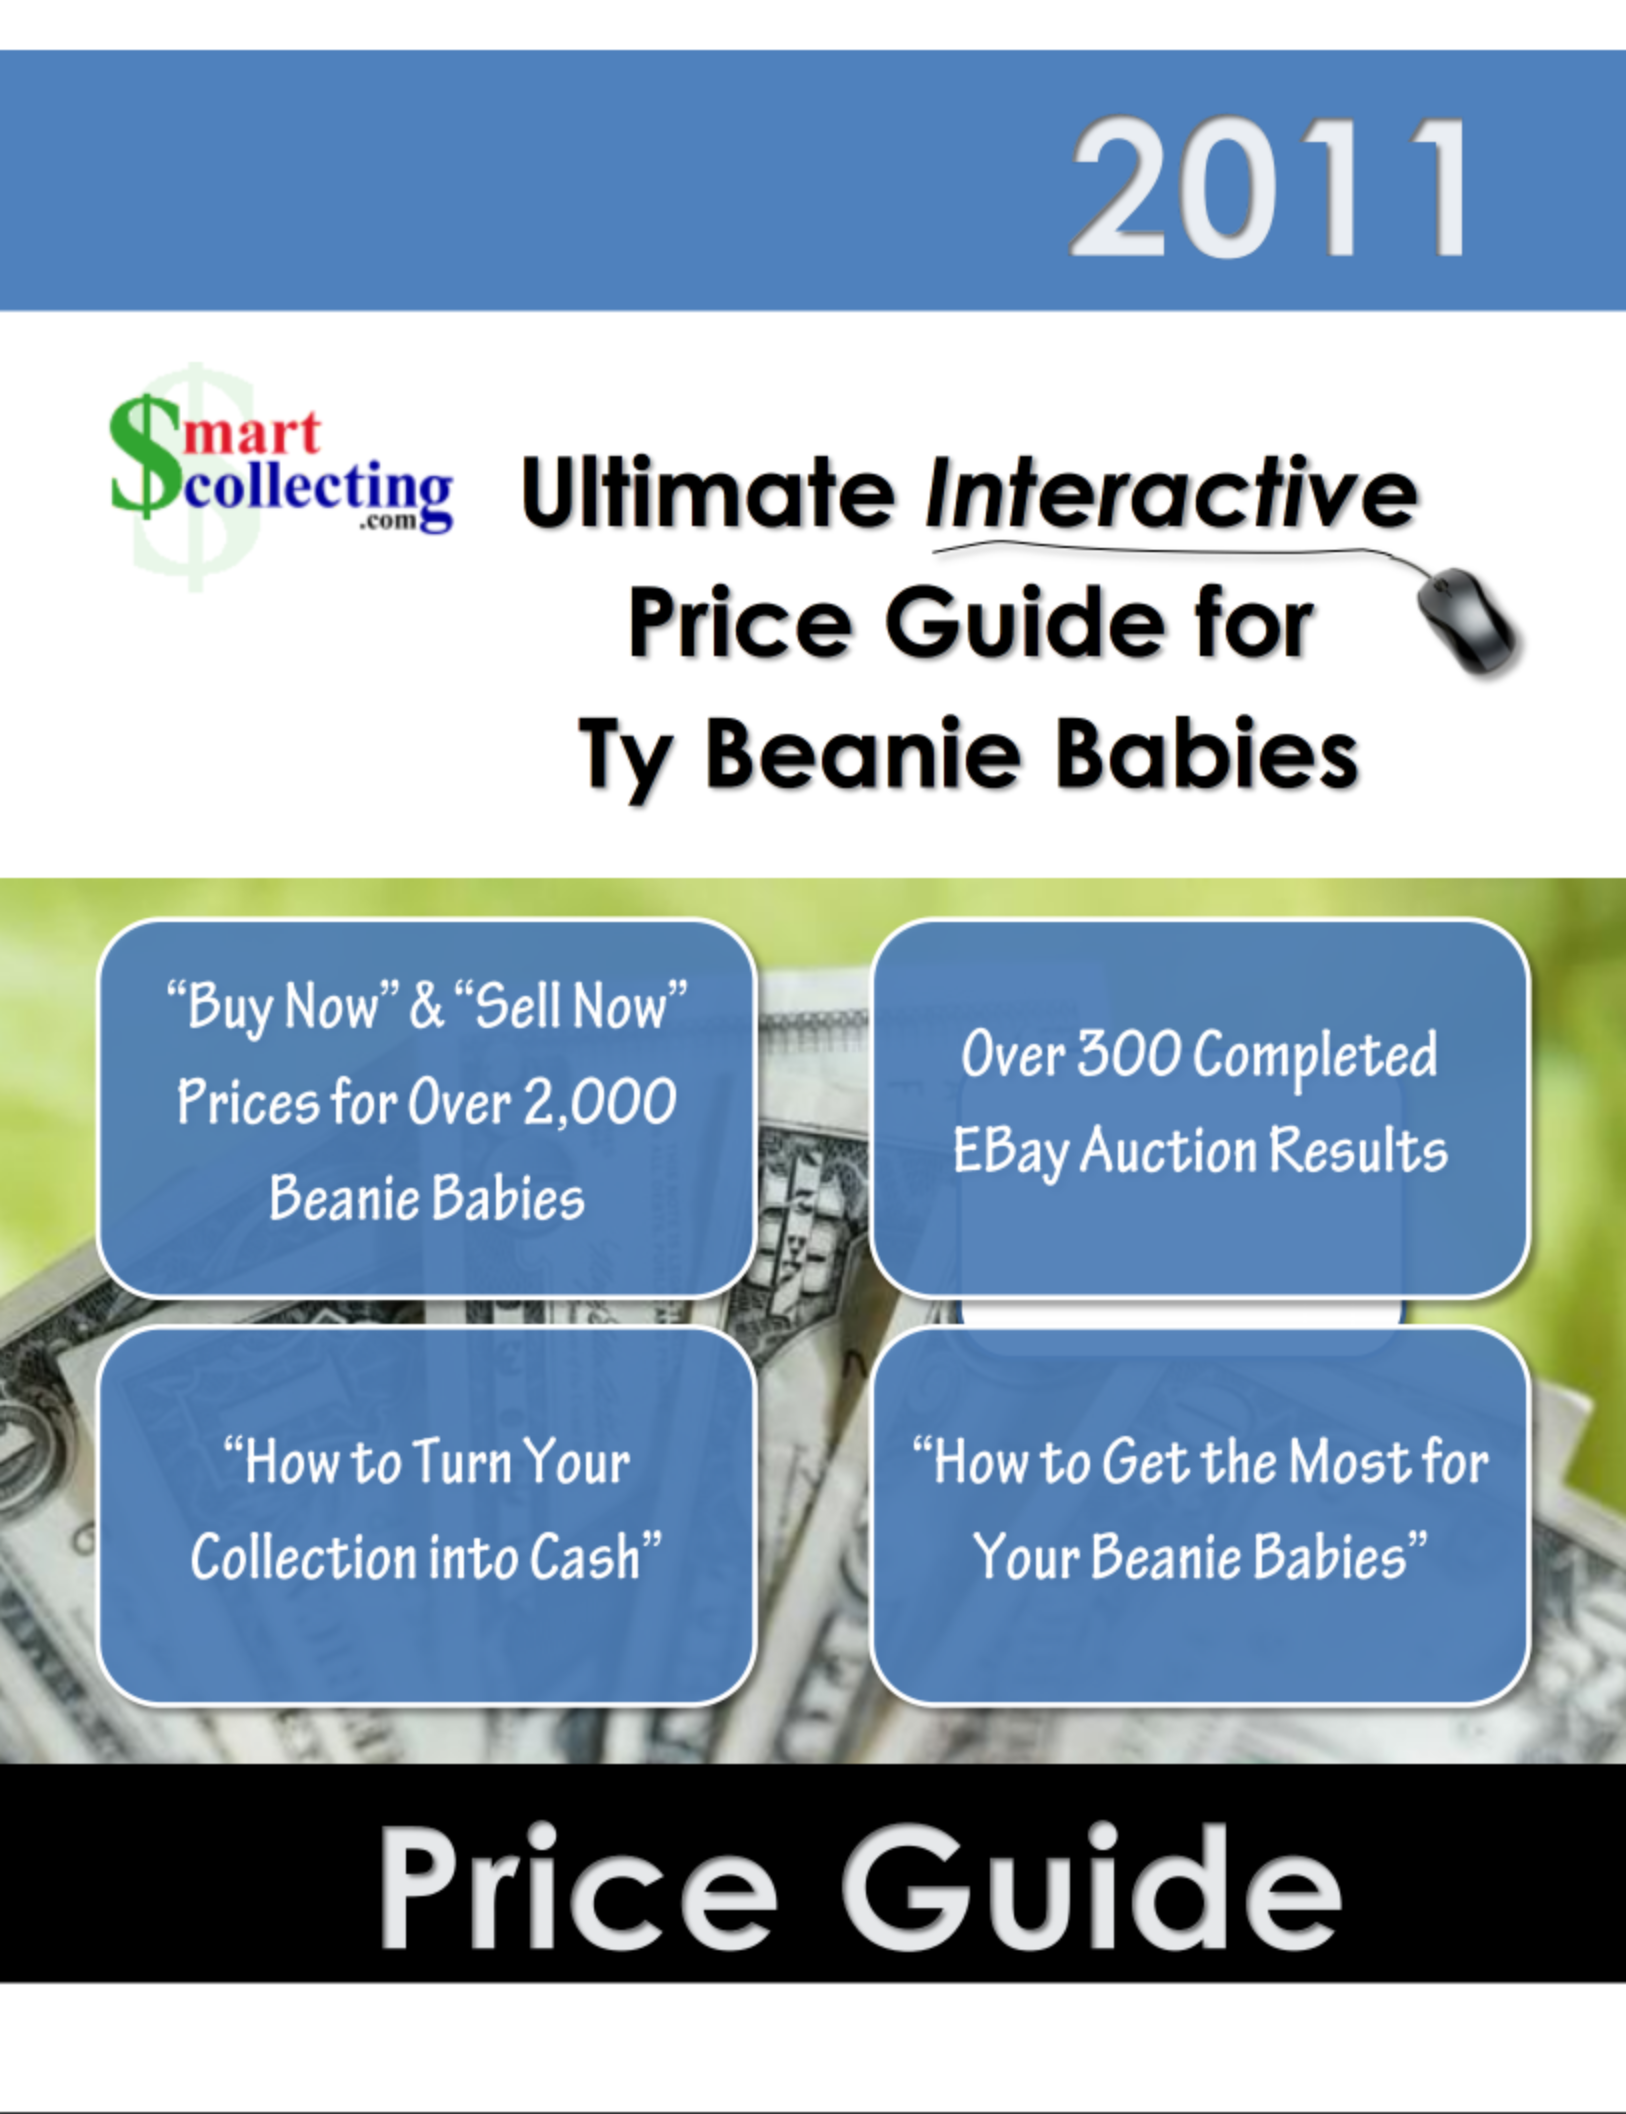 SmartCollecting.com's Ultimate Interactive 2011 Price Guide for Ty Beanie Babies